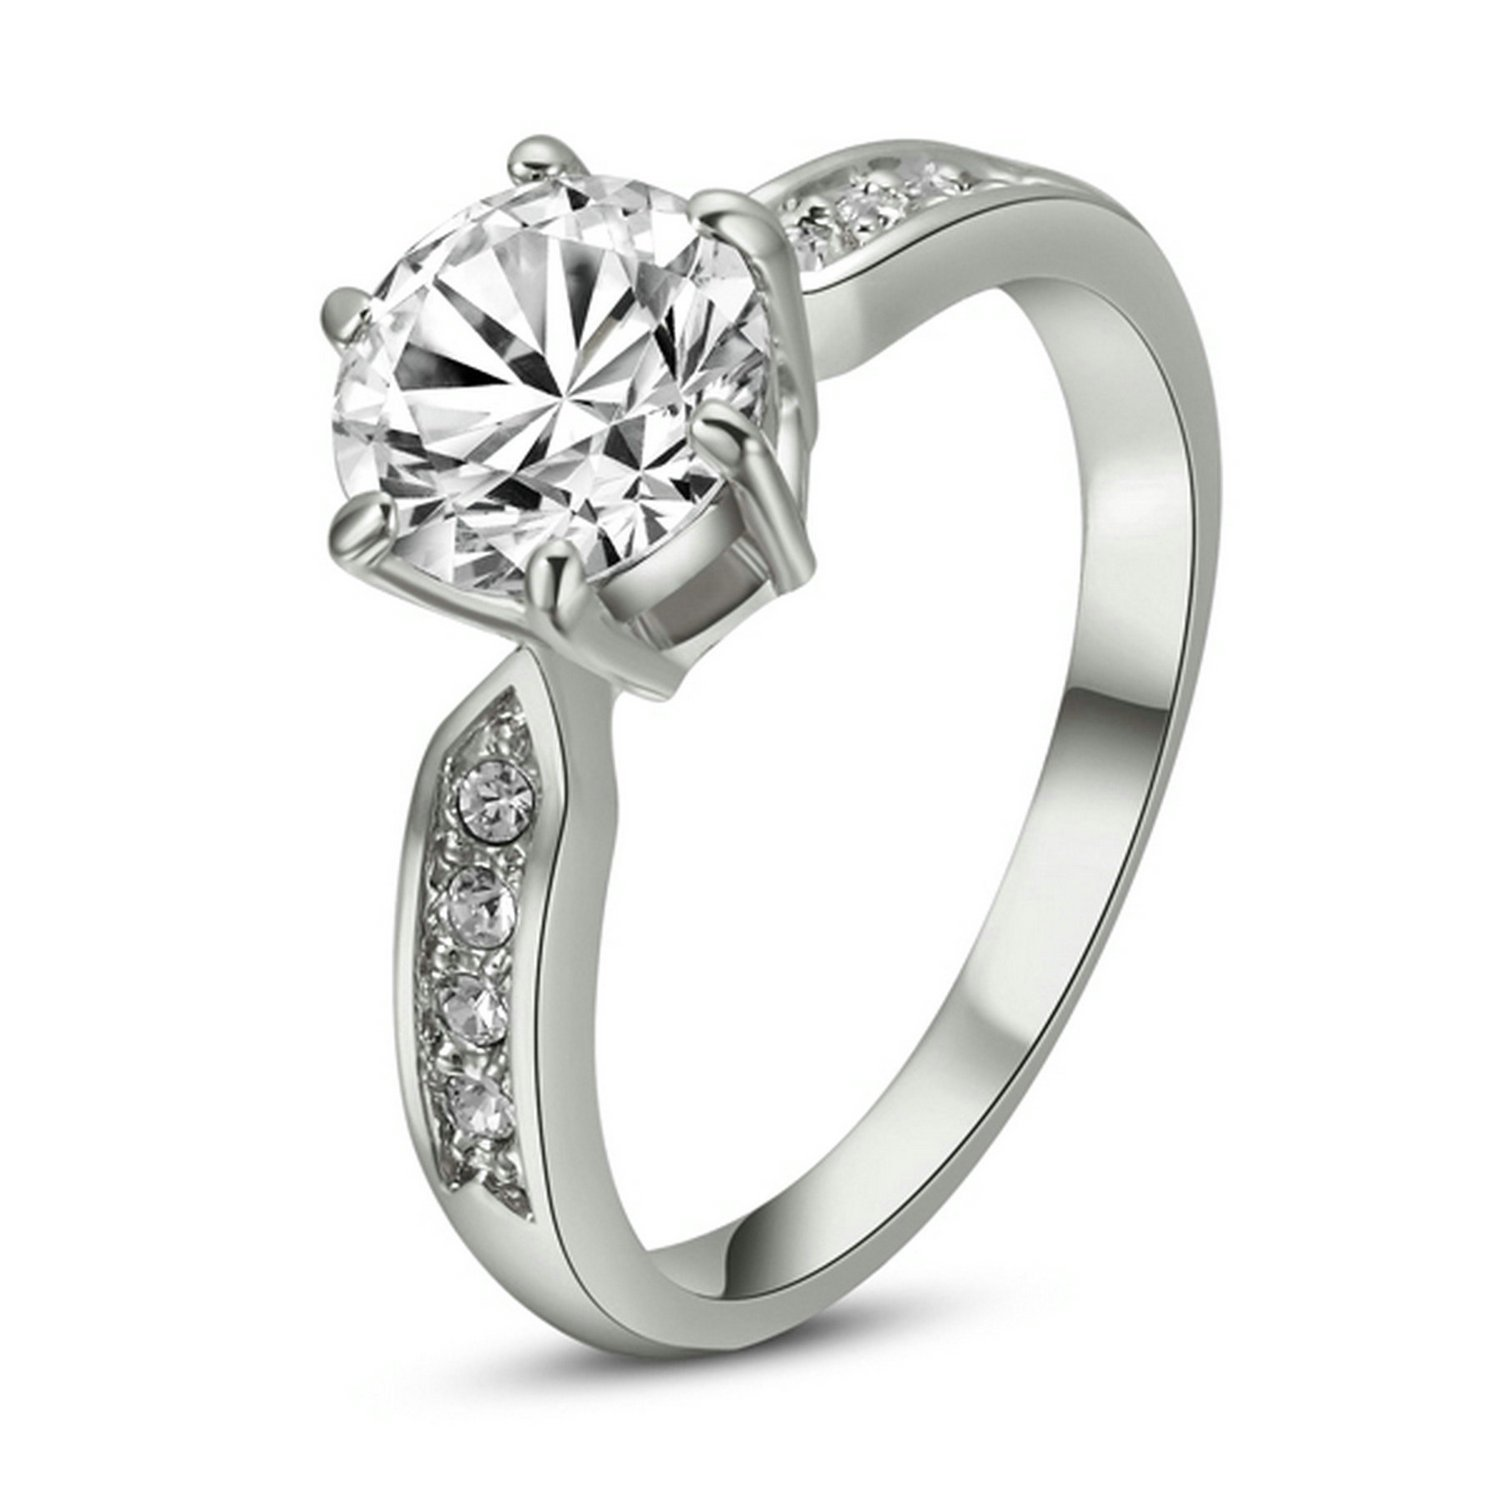 Awesome White Gold or Platinum Wedding Rings